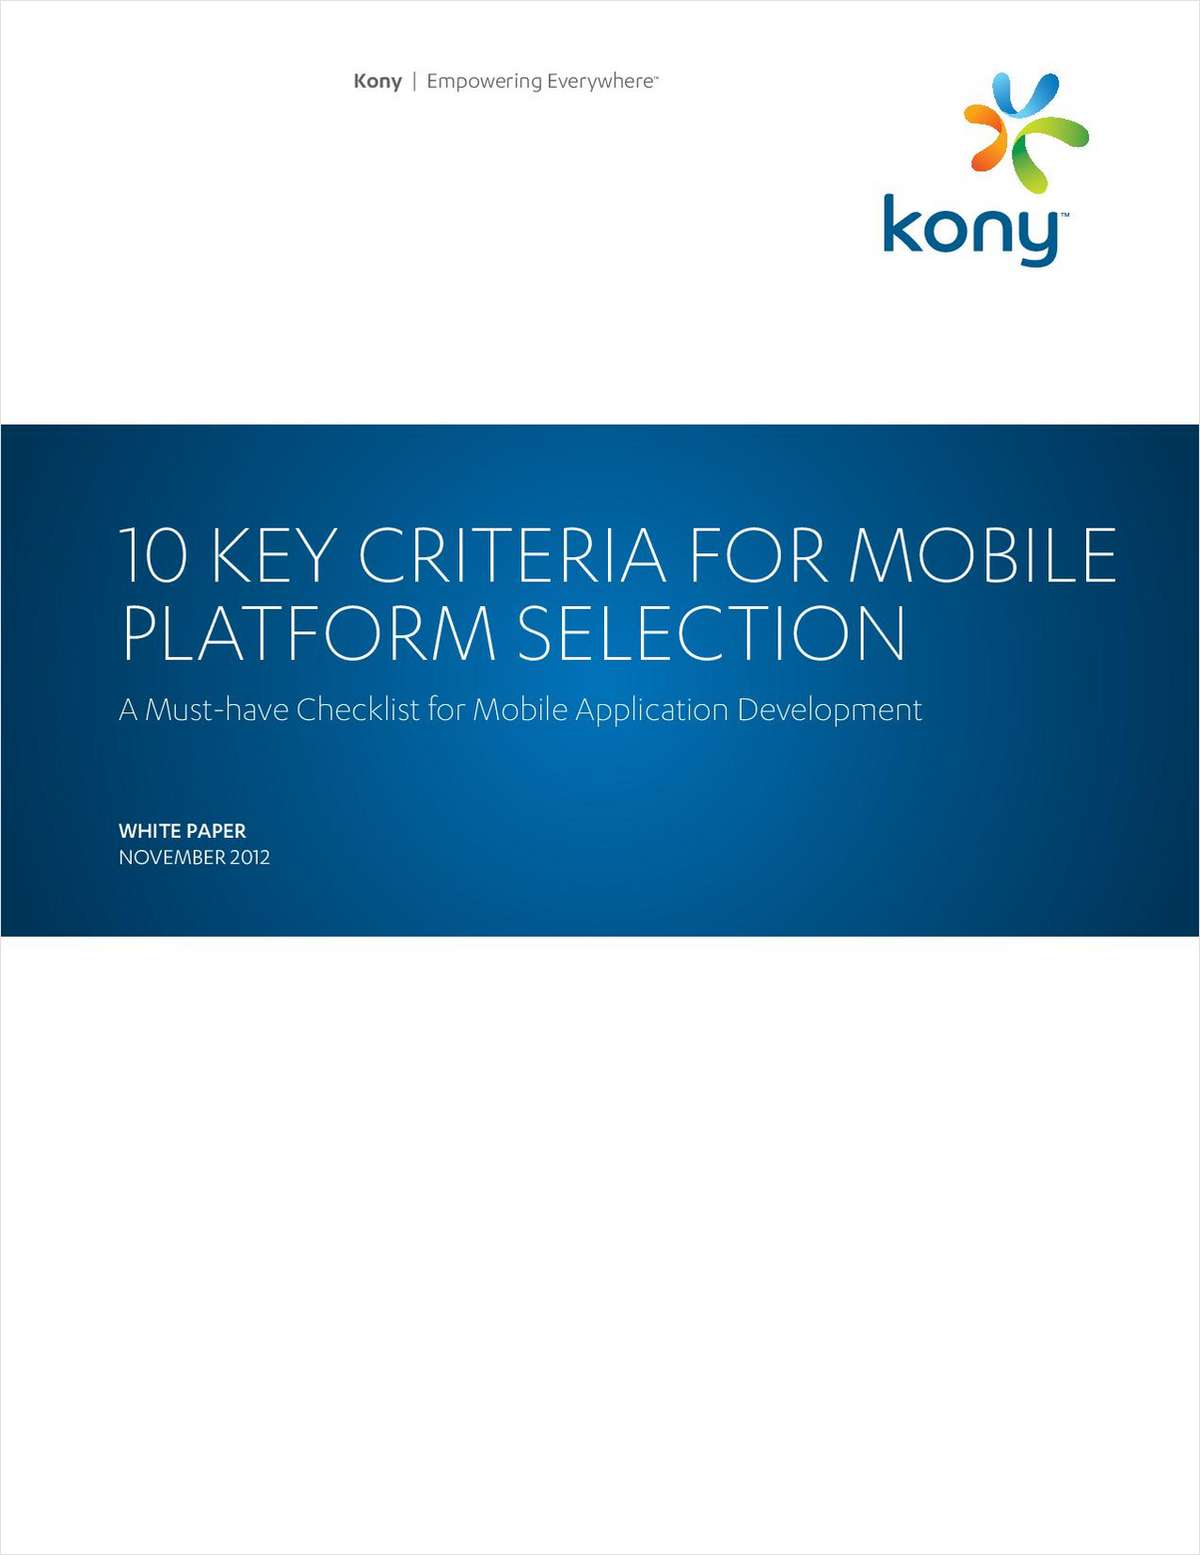 10 Key Criteria for Mobile Platform Selection